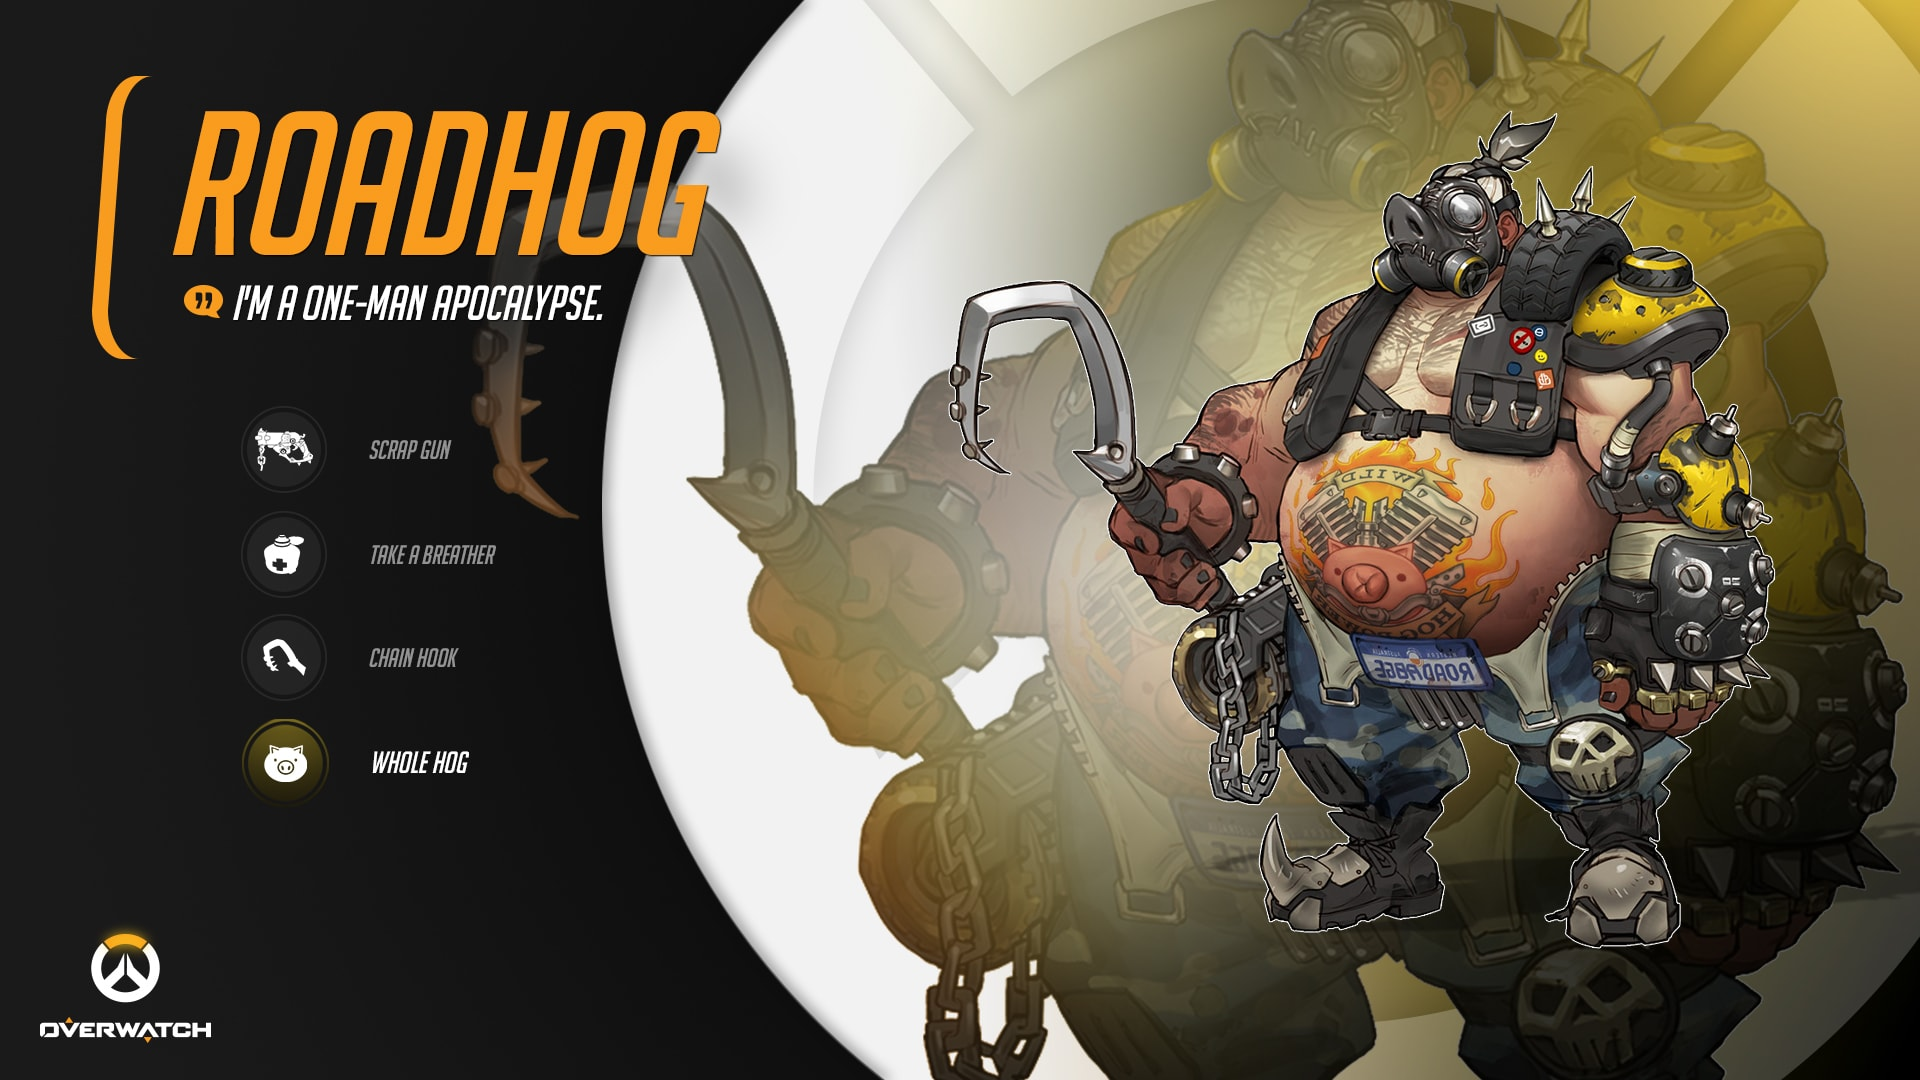 Overwatch : Roadhog Wallpaper